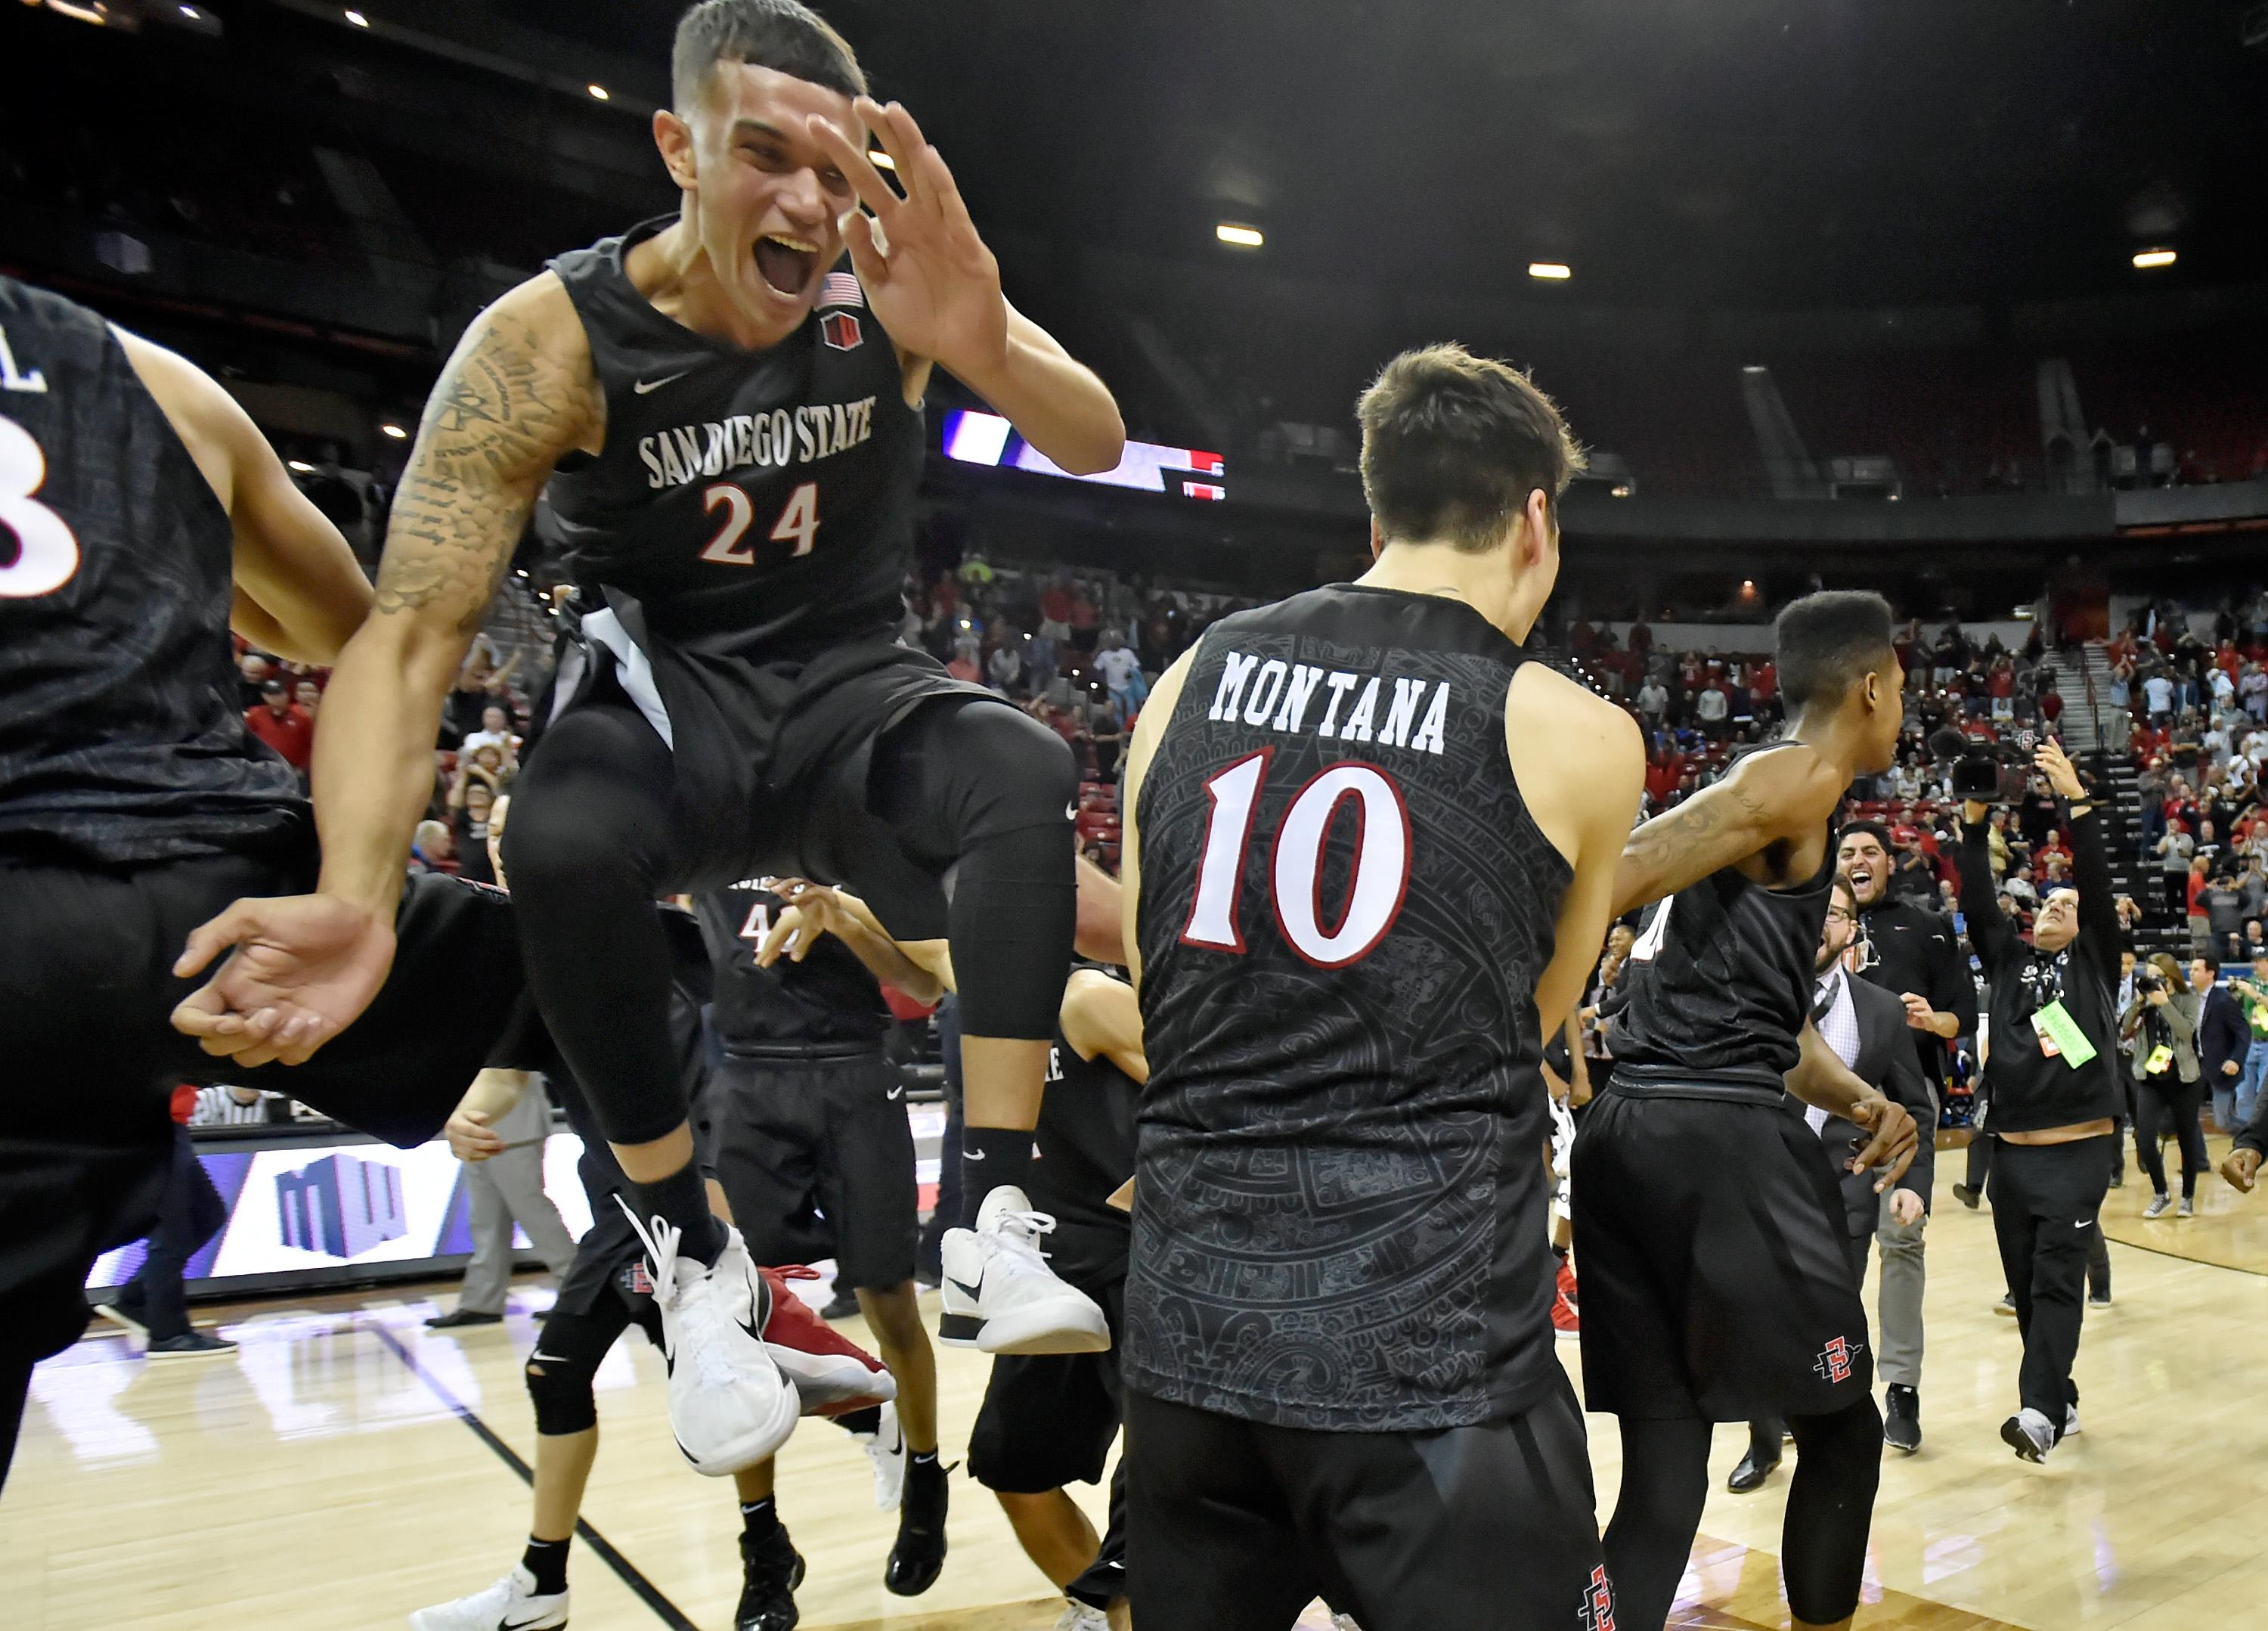 LAS VEGAS, NV - MARCH 10:  Nolan Narain #24 of the San Diego State Aztecs celebrates with teammates after the team defeated the New Mexico Lobos in the championship game of the Mountain West Conference basketball tournament at the Thomas & Mack Center on March 10, 2018 in Las Vegas, Nevada. San Diego State won 82-75.  (Photo by David Becker/Getty Images)